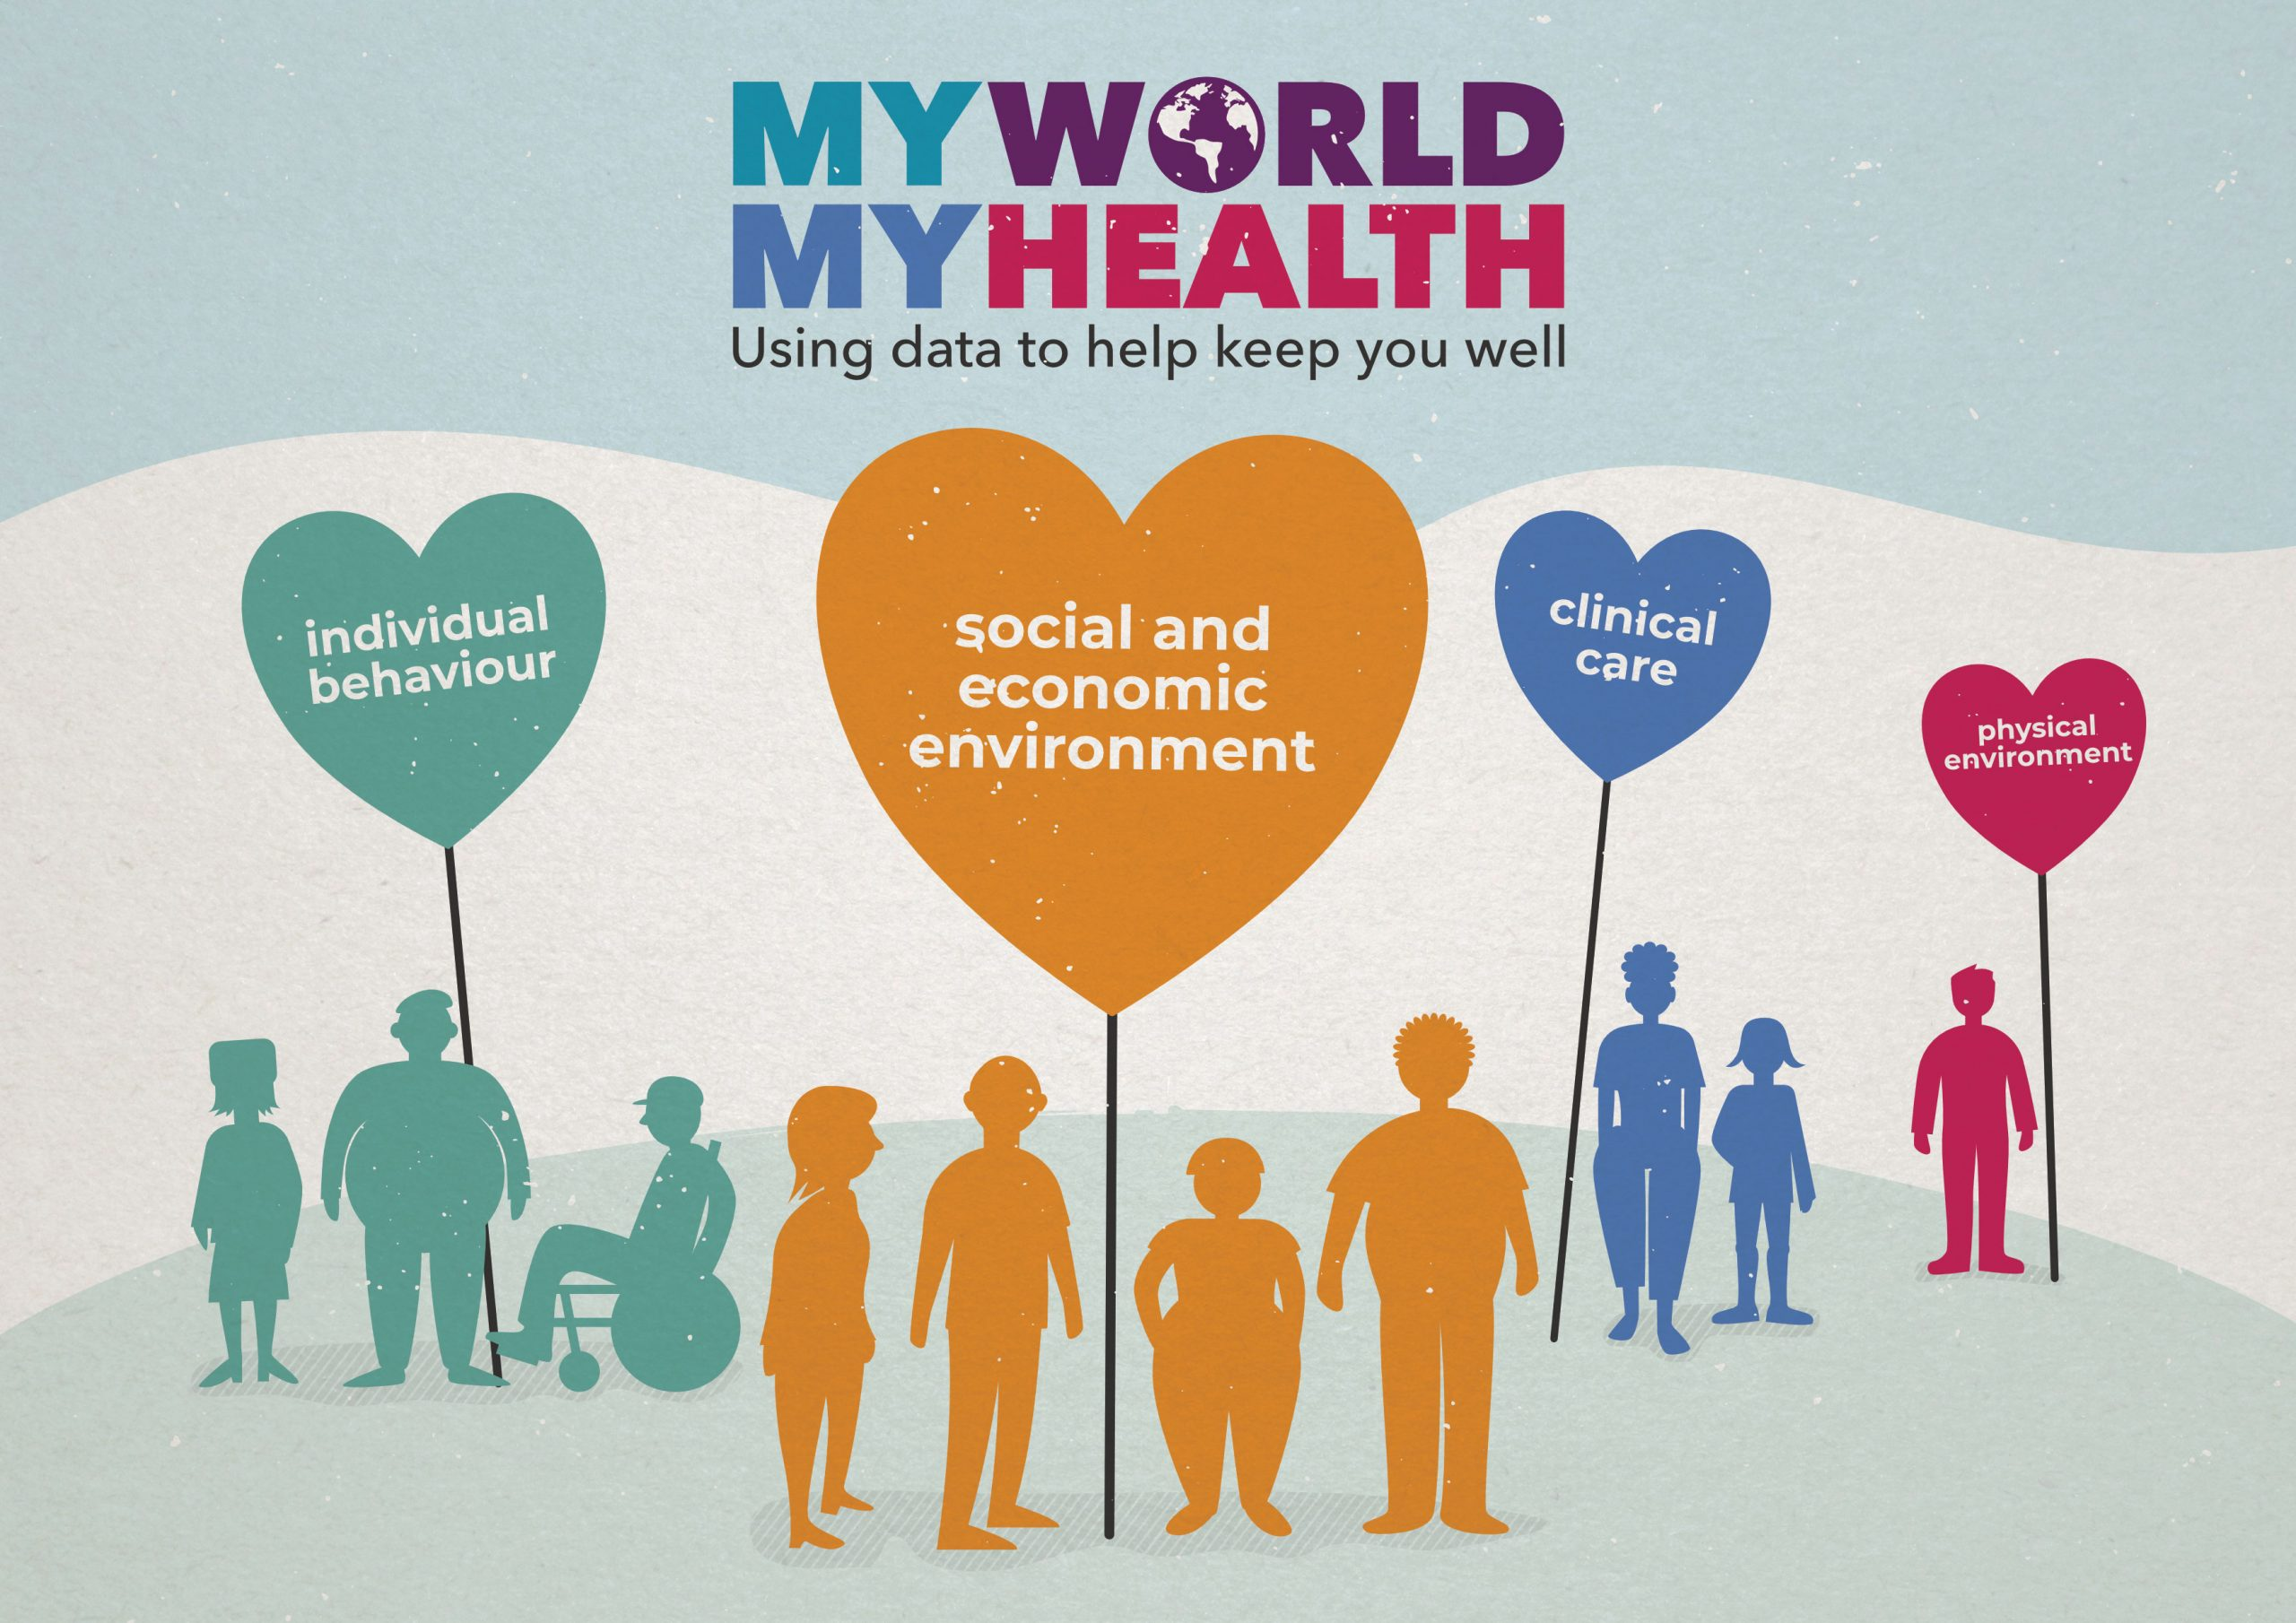 Image showing the 'My World, My Health' logo and the different factors that influence health